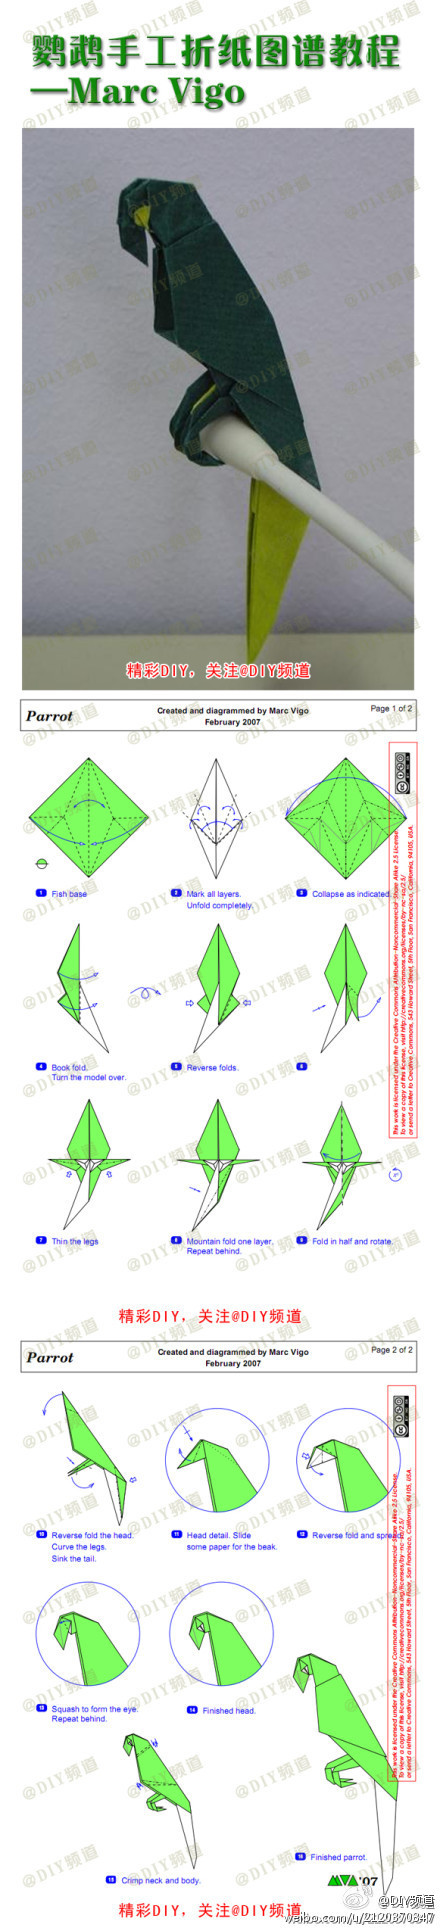 Origami Diy Tutorial Coldplay Tide Things Three Dimensional Parrot Diagrams O Xwing Fighter Diagram Easy Version Super Cute Yo Fold To Put A Table